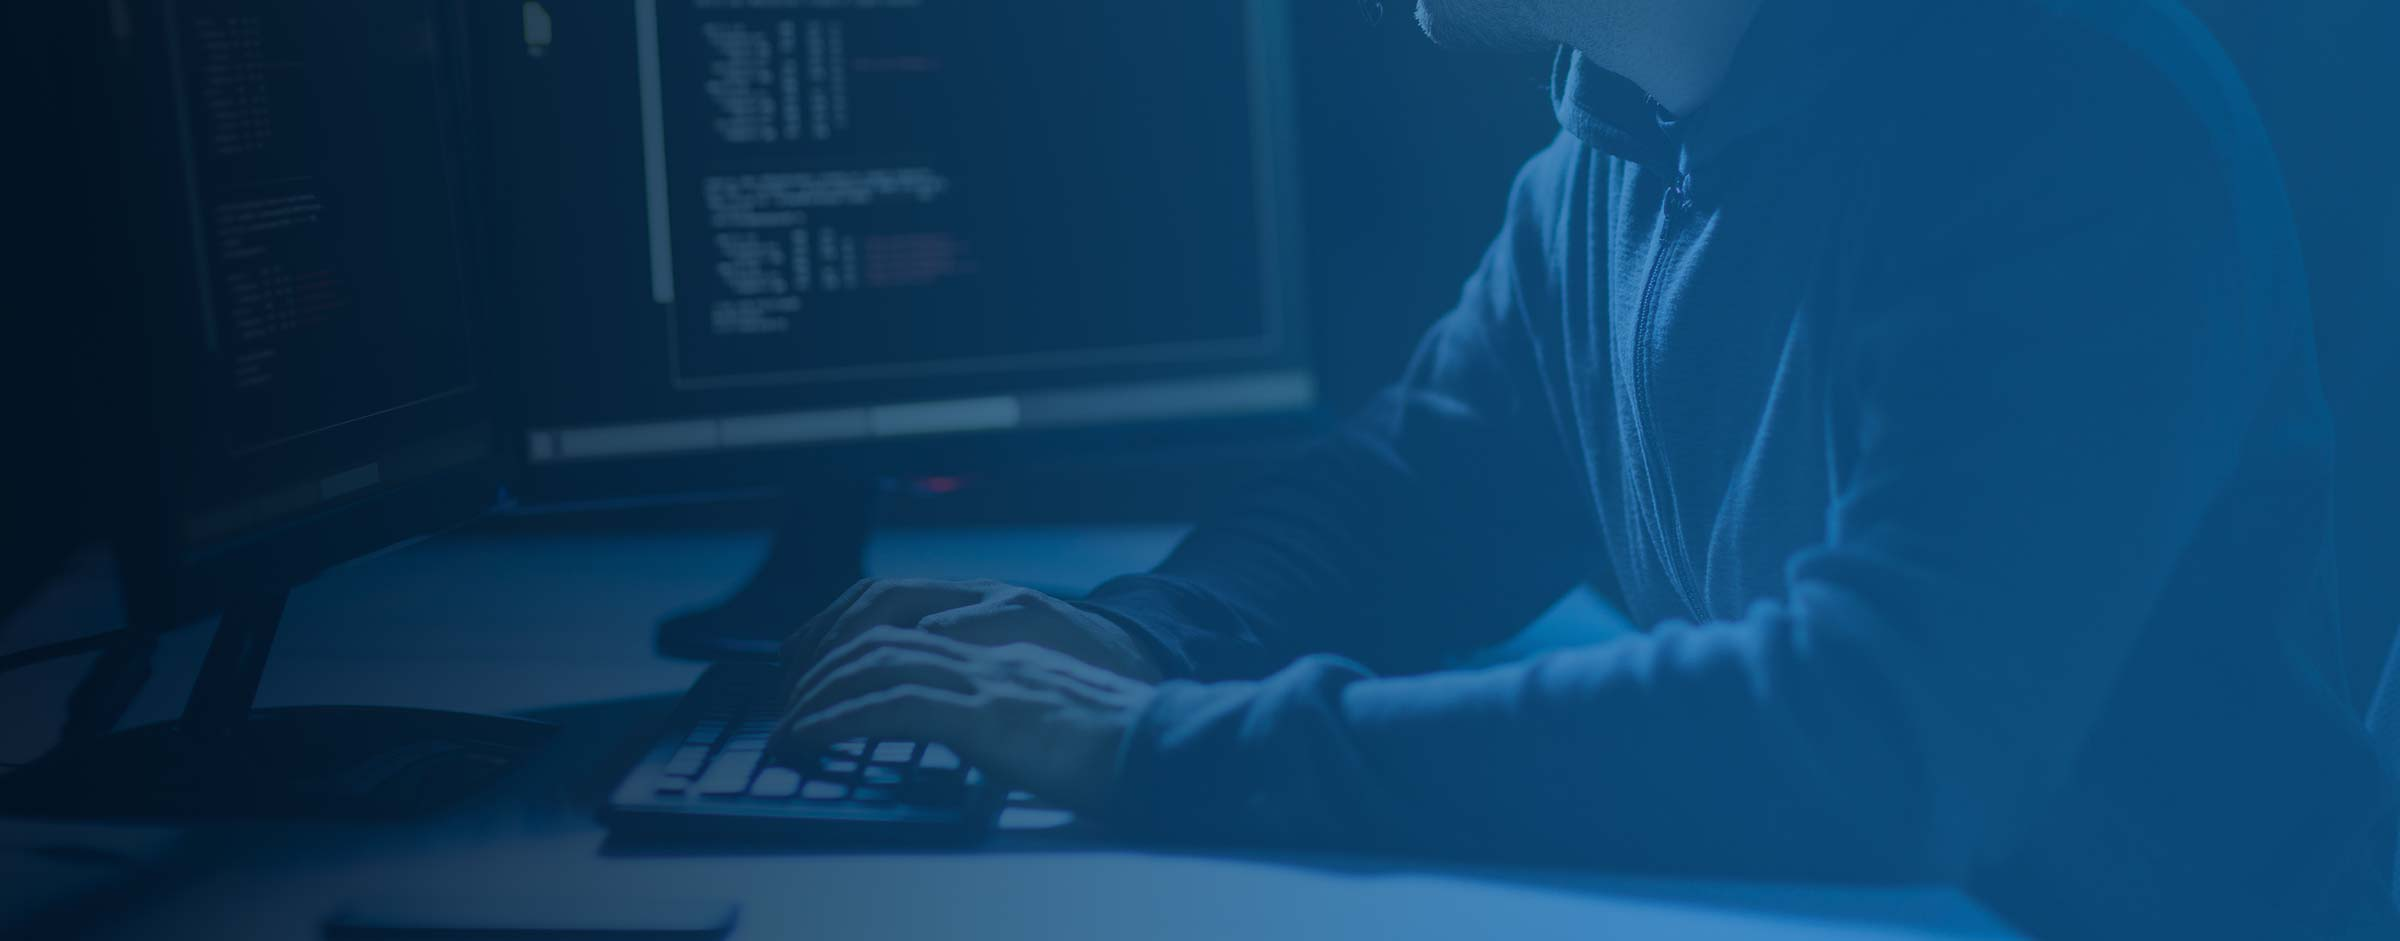 security penetration testing